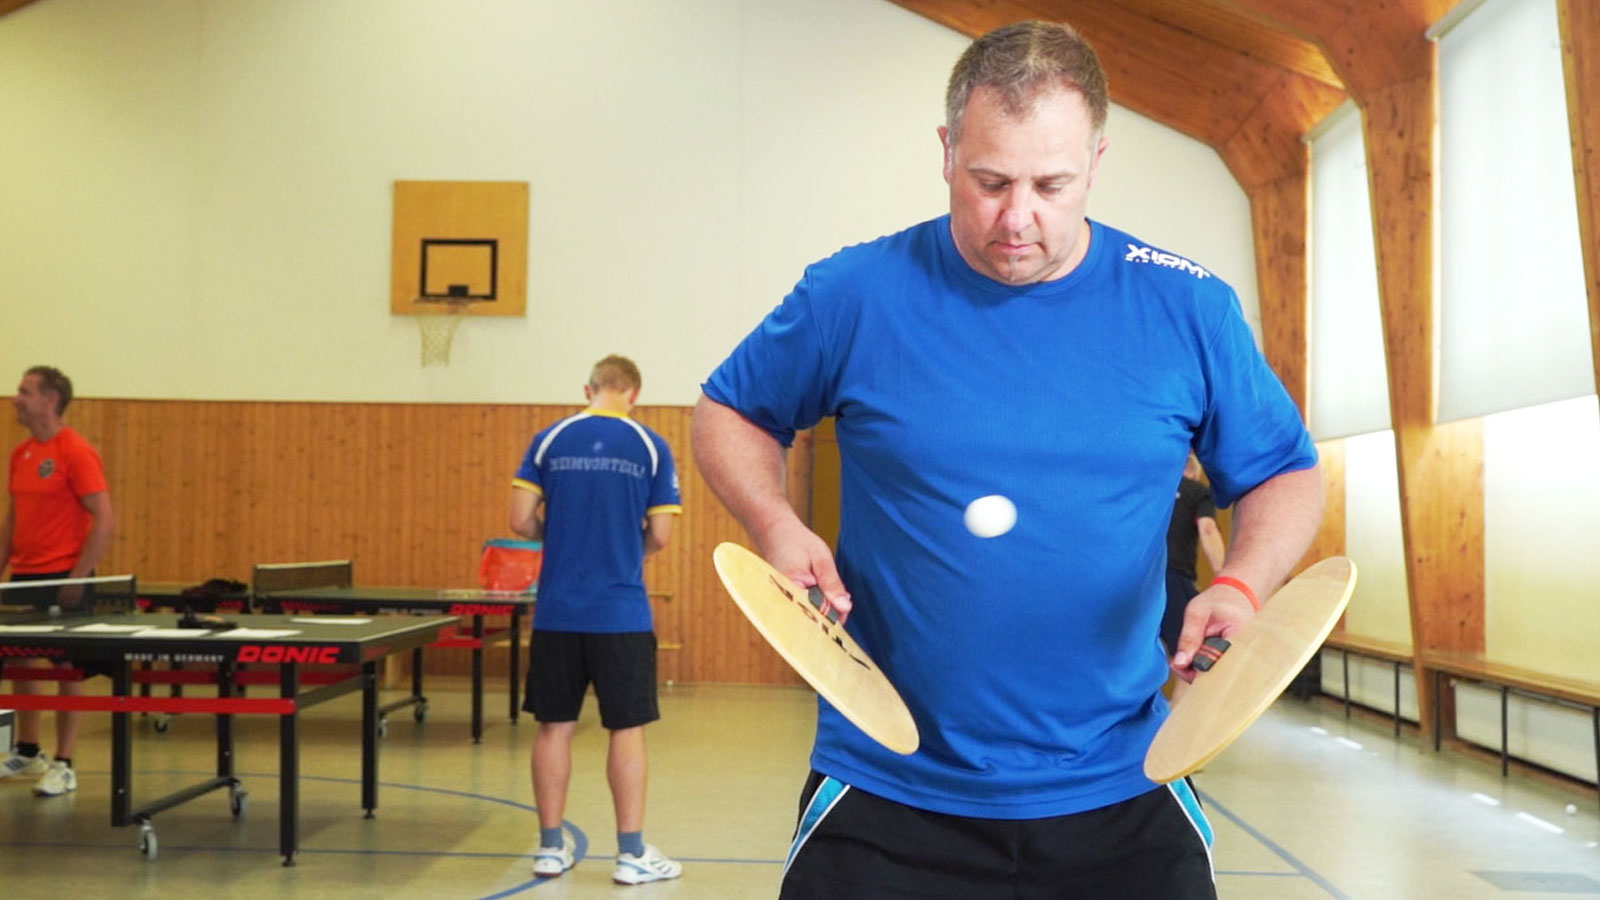 CrazyPingPong - alternative Trainingsinhalte